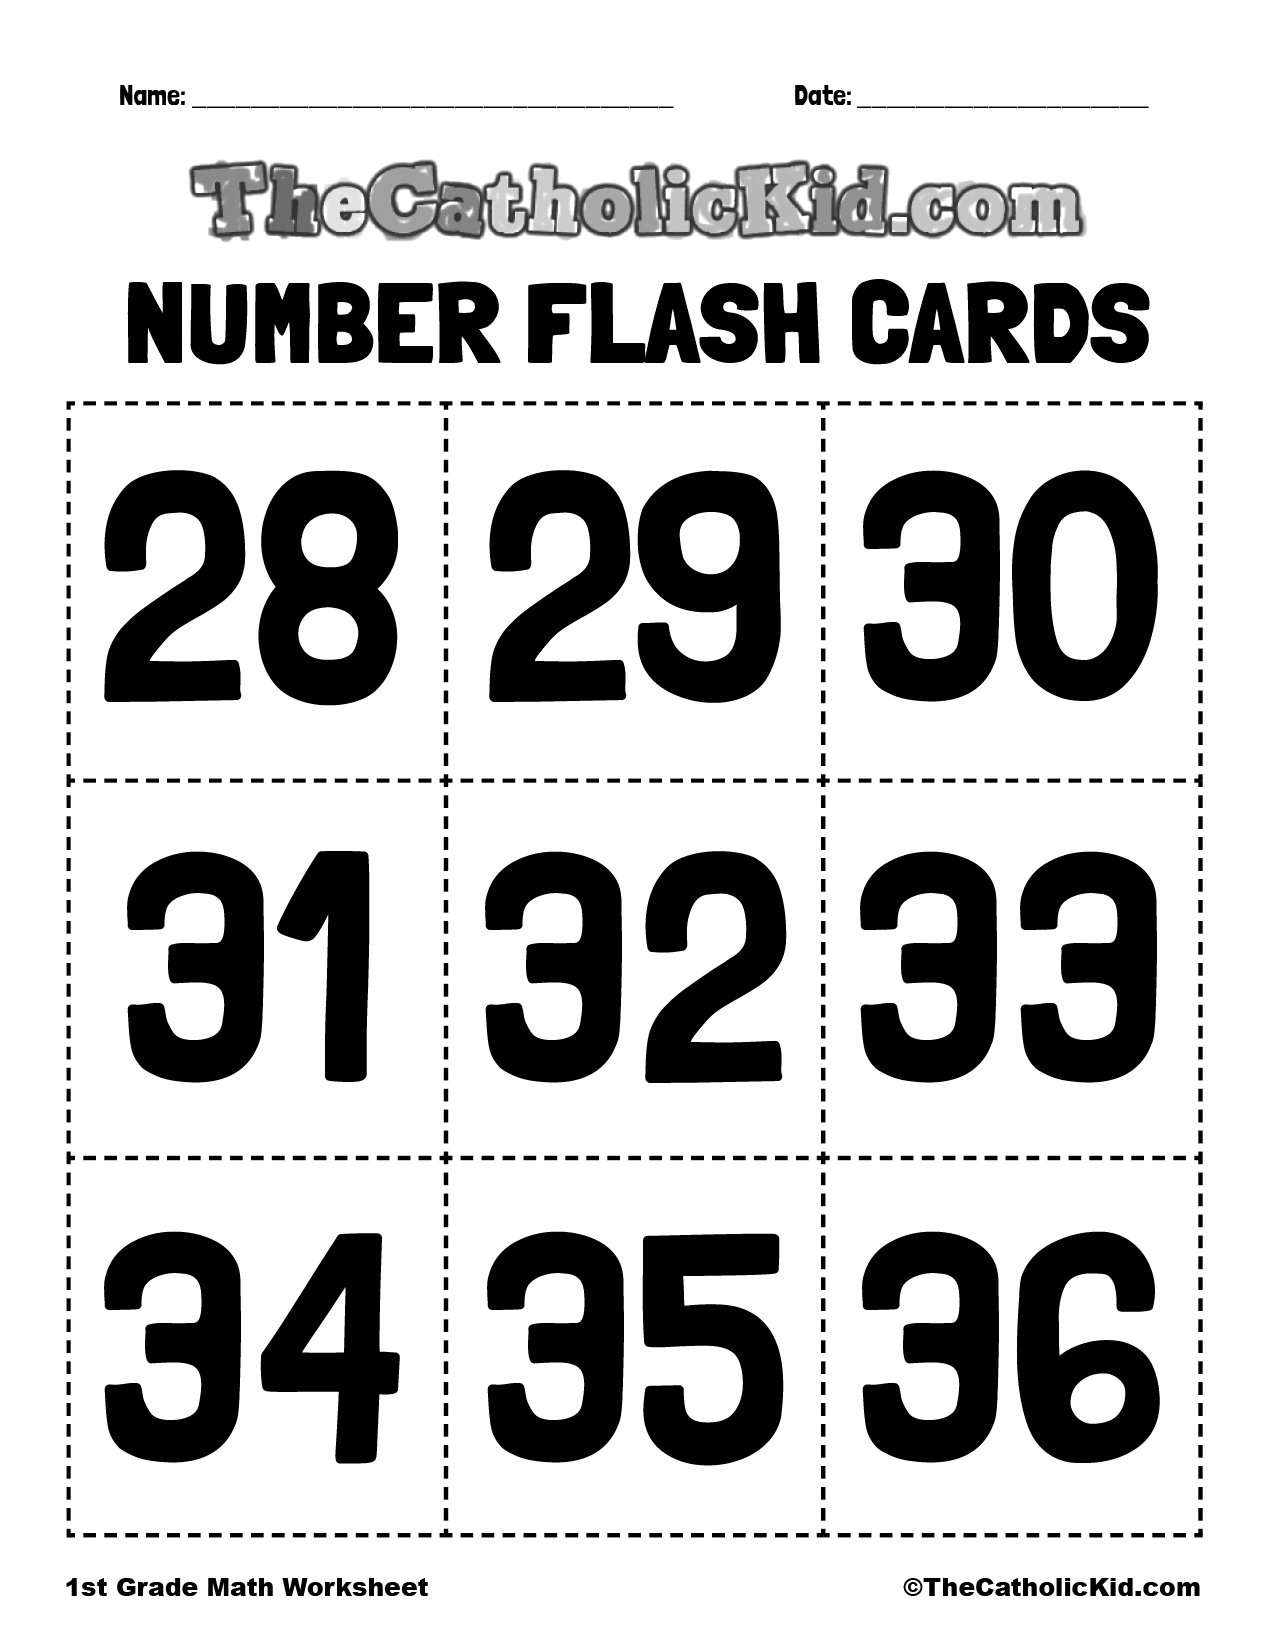 Number Flash Cards 28-36 - 1st Grade Math Worksheet Catholic